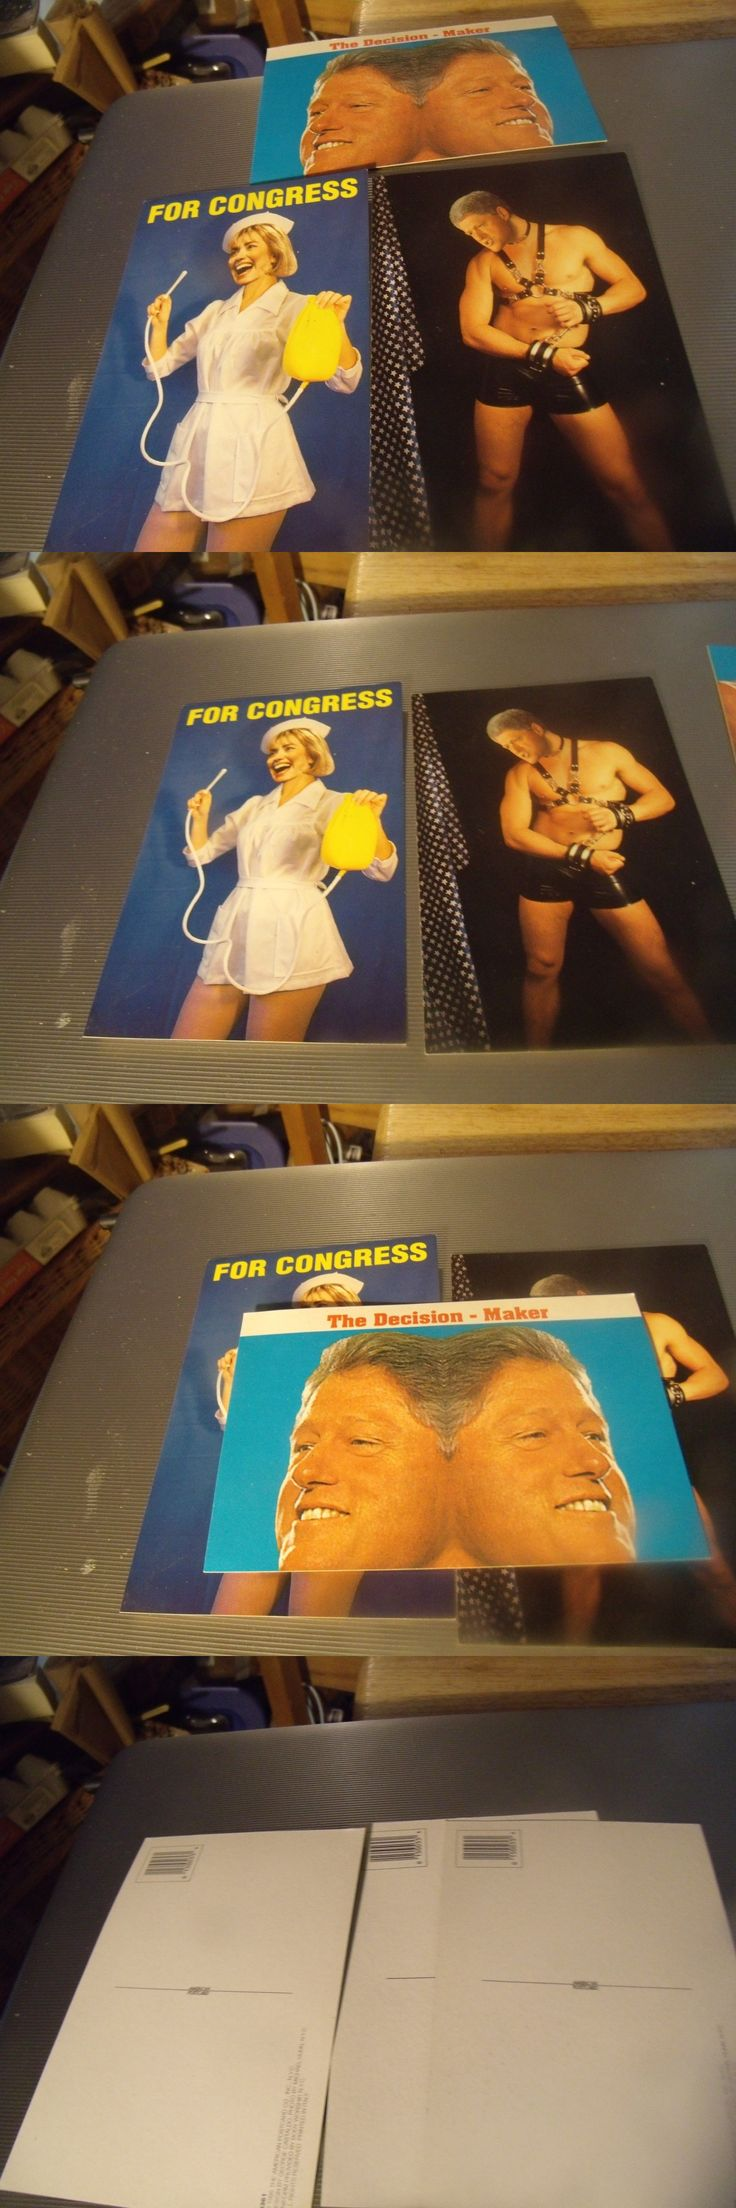 Bill Clinton: 3 Anti Bill And Hillary Clinton Postcards From 1995 -> BUY IT NOW ONLY: $3.99 on eBay!